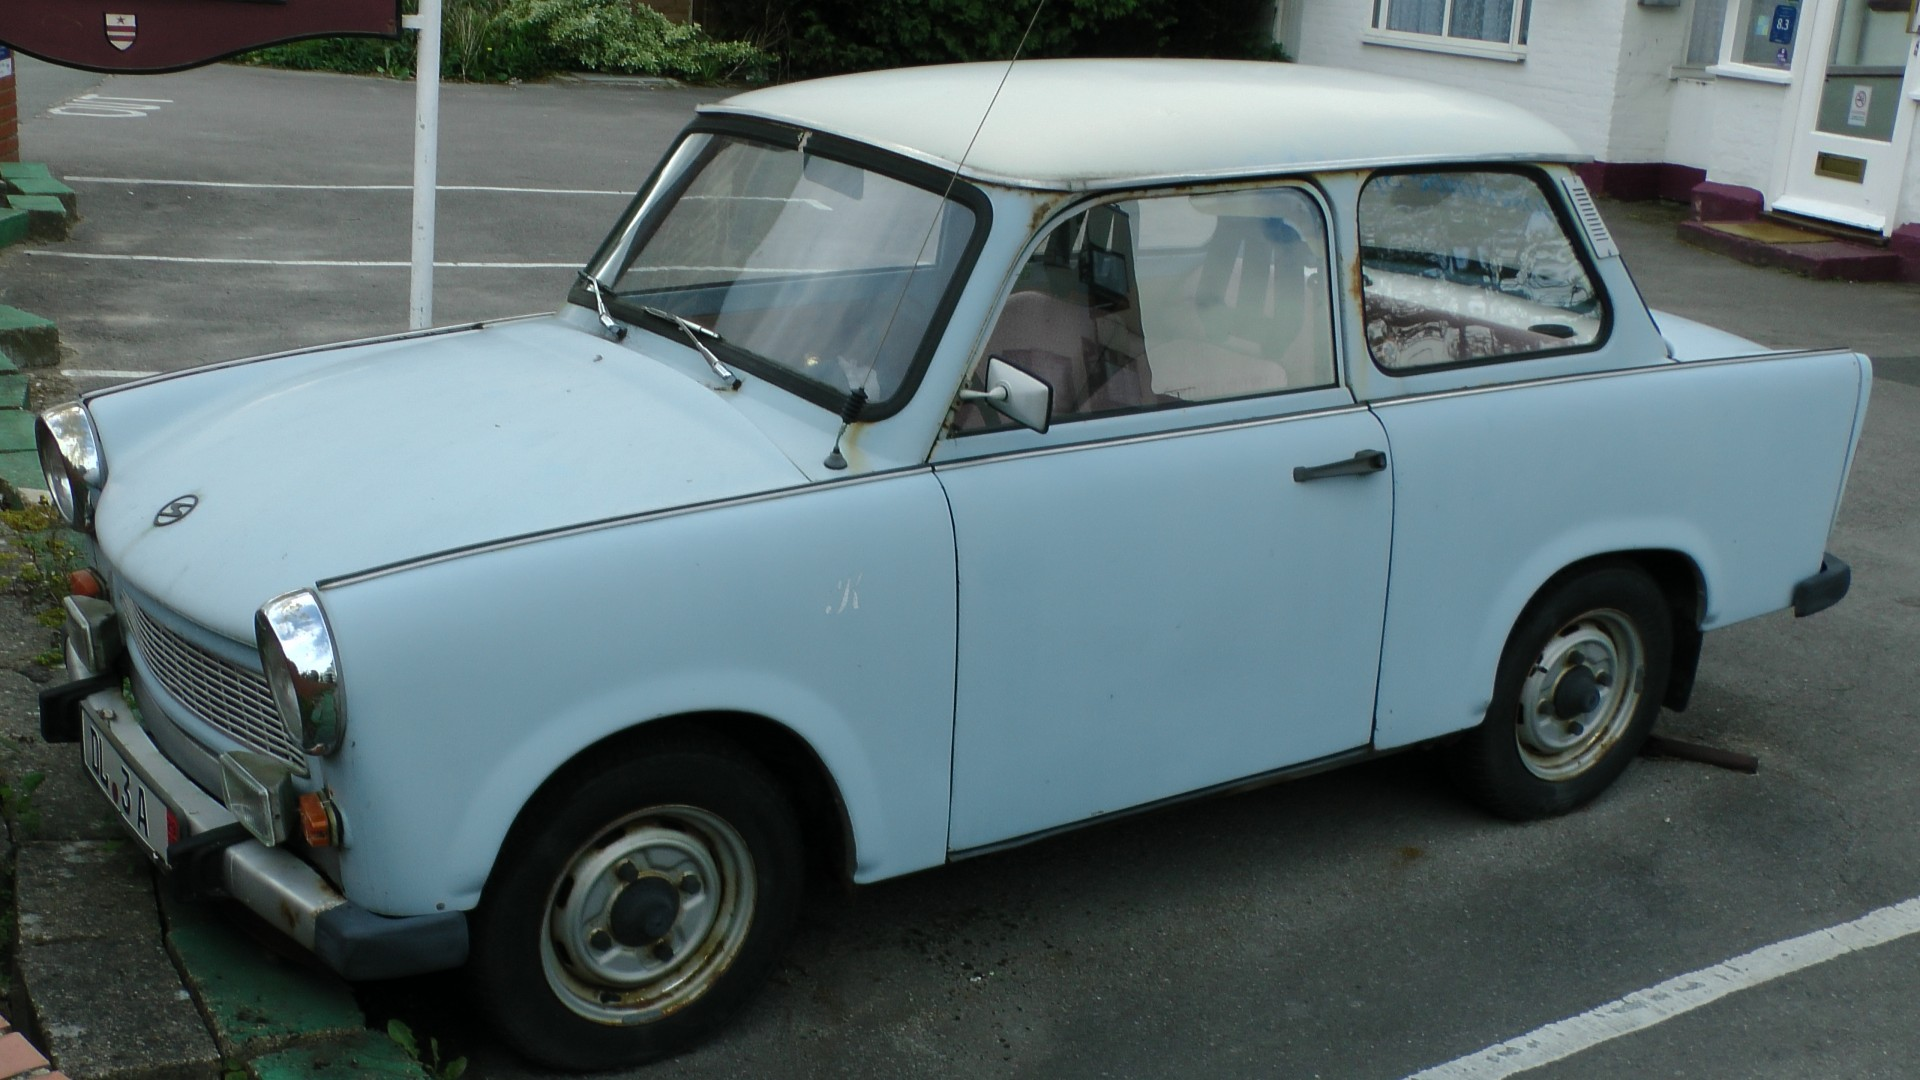 Cars Trabant 601S car Trabant